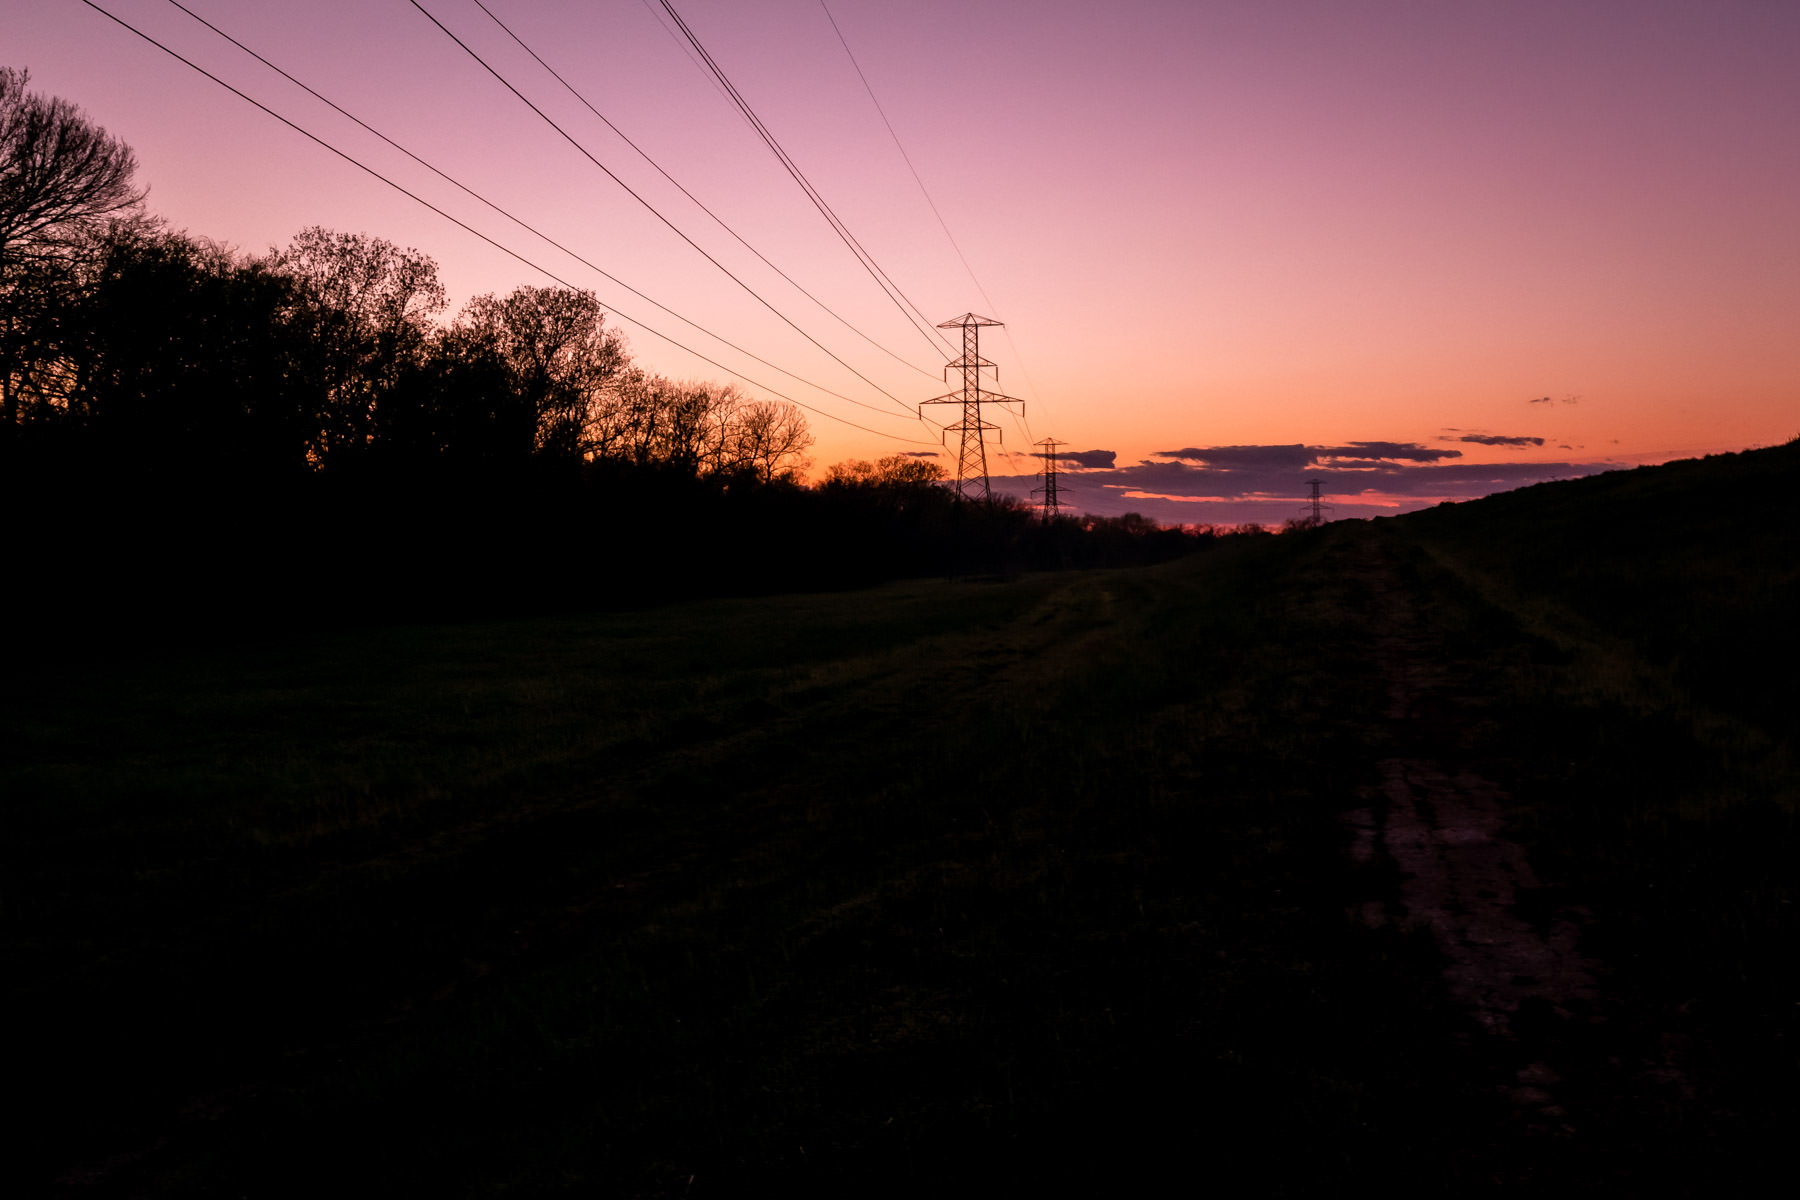 The early-morning sun illuminates power lines along the edge of the Great Trinity Forest in South Dallas.